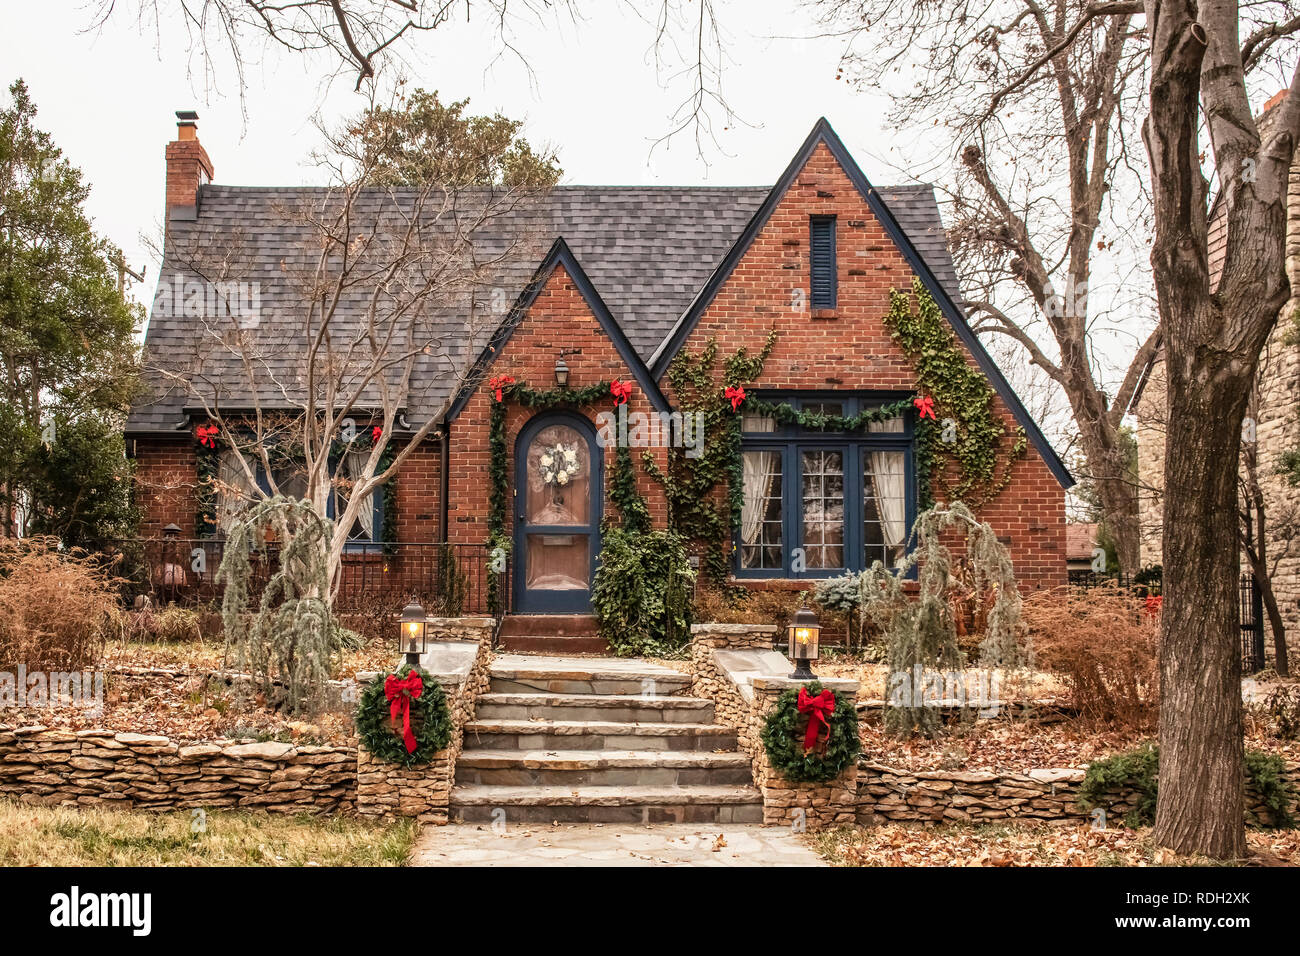 Cute brick cottage with red bows and greenery - decorated for Christmas in bleak wintertime - Stock Image